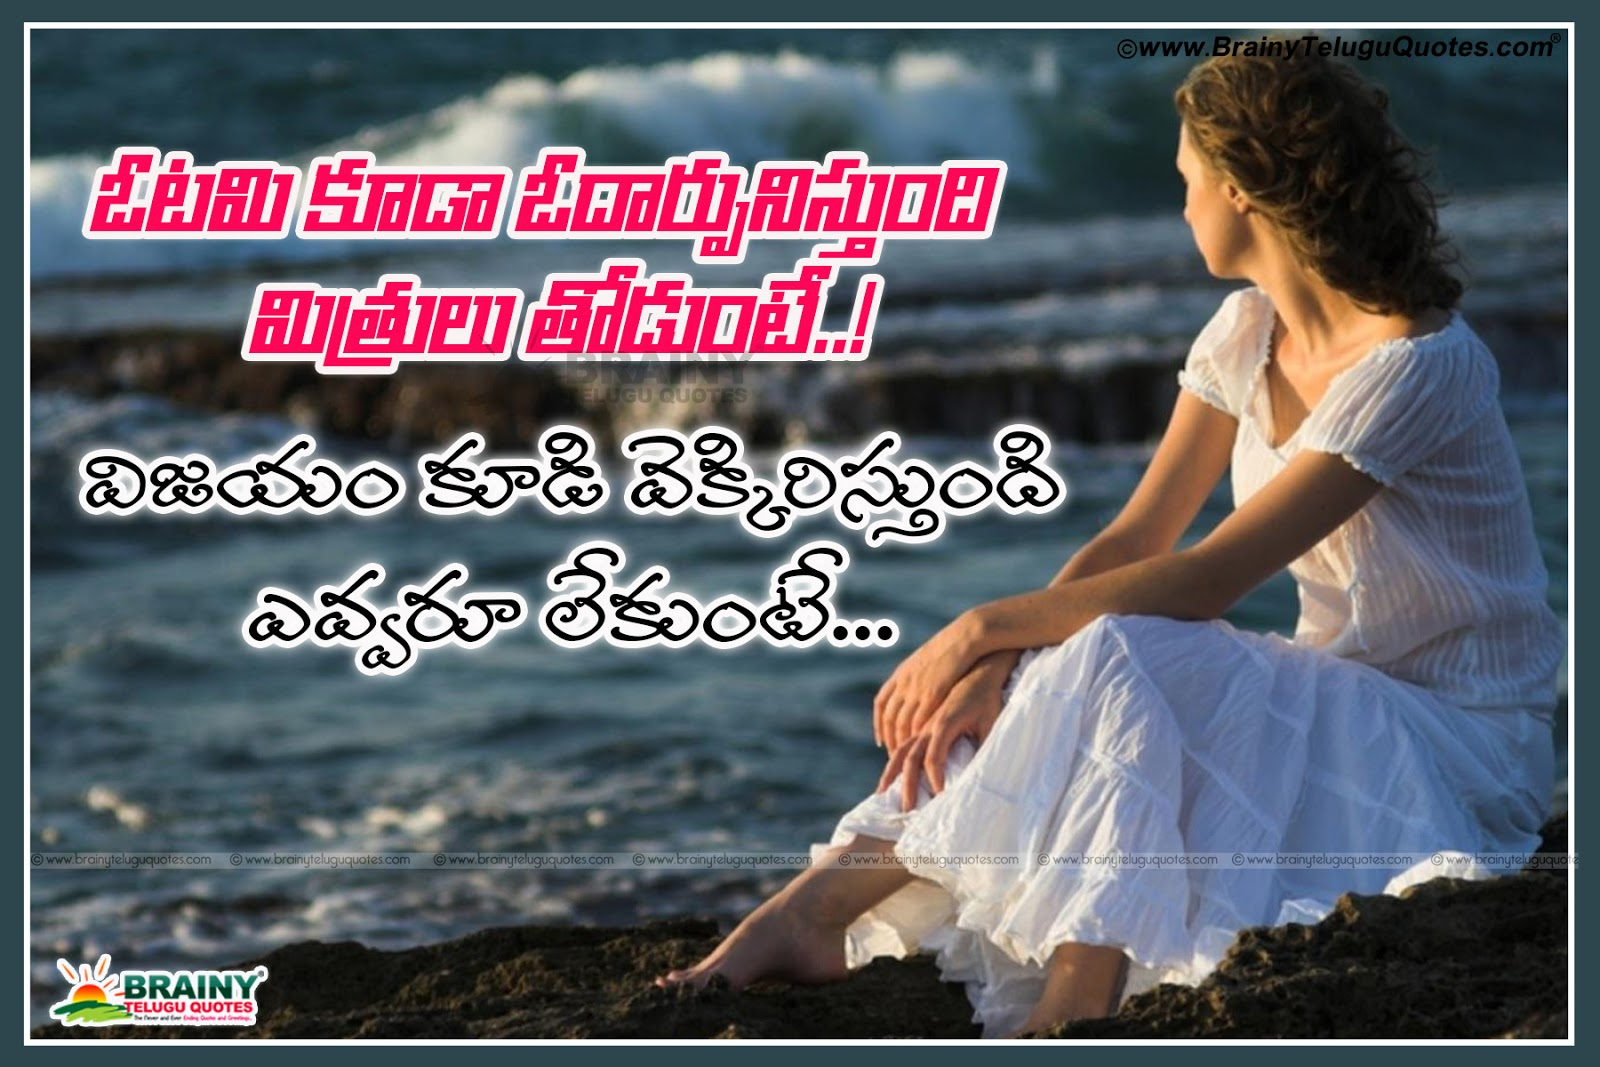 Quotes About The Importance Of Friendship Telugu Friendship Value Quotes With Hd Wallpaperstelugu Quotes